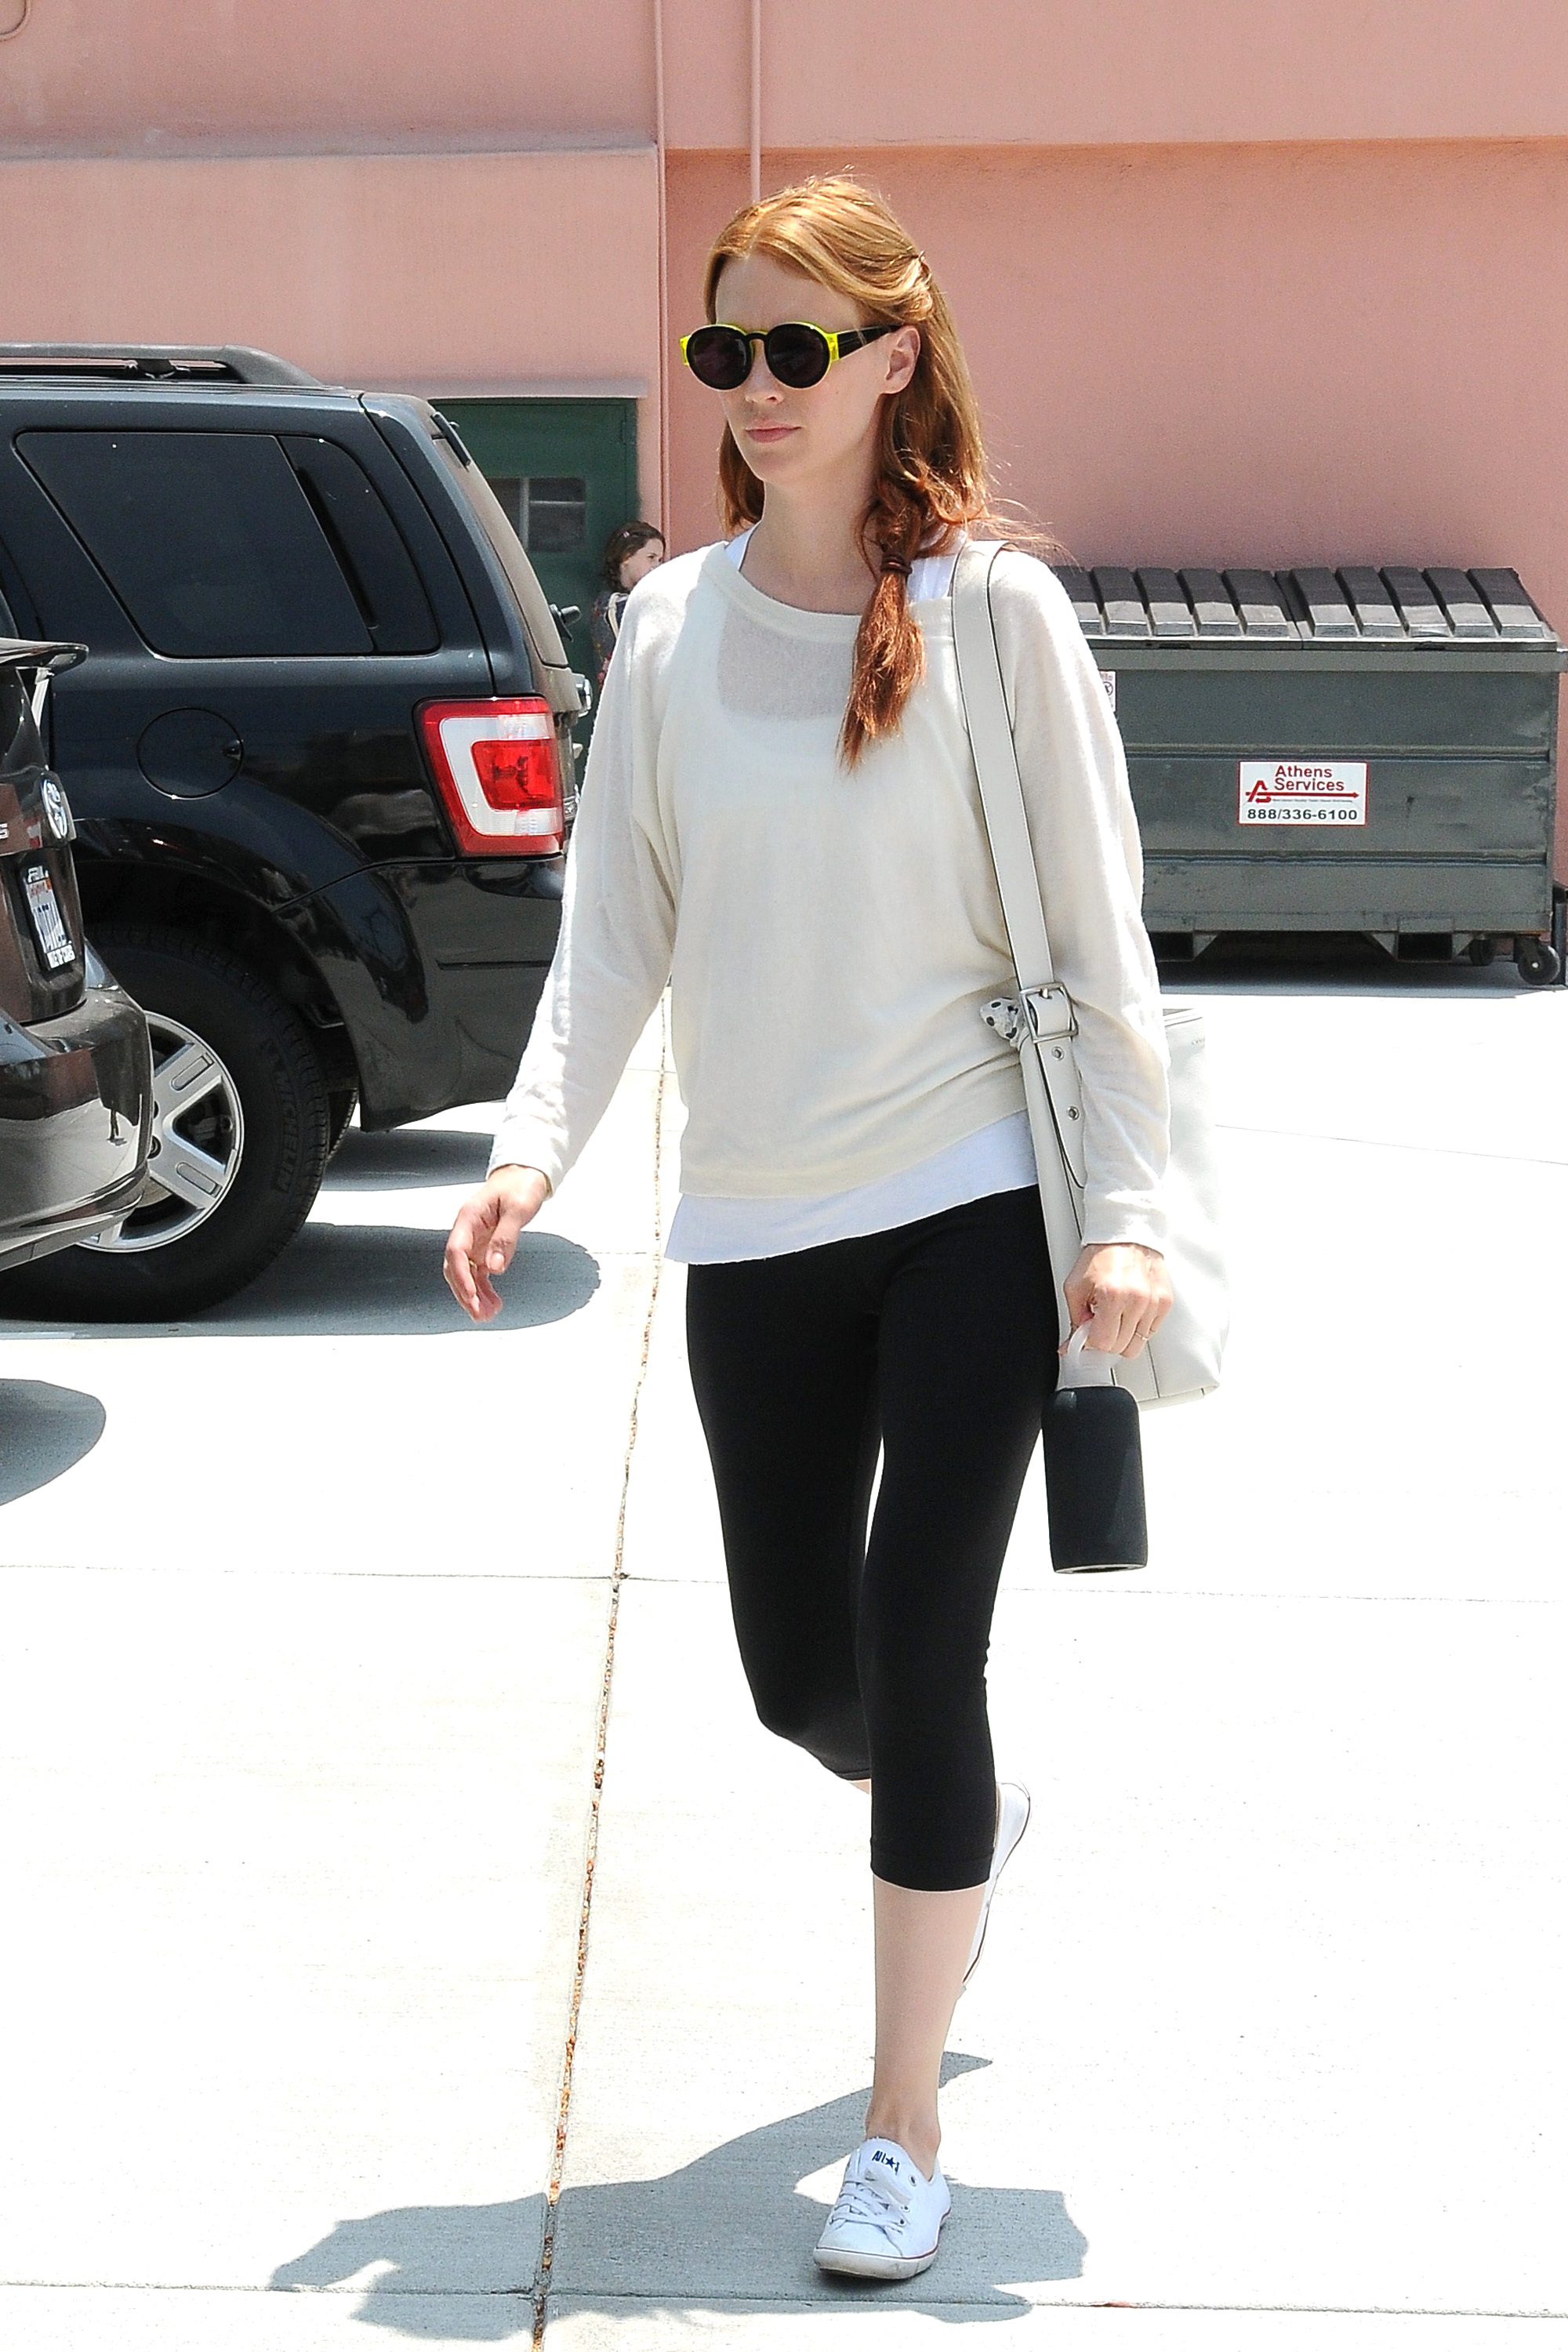 January Jones, sporting a new red hair color,  is seen leaving pilates class in Los Feliz Los Angeles, California - 20.06.12  Where: United States When: 20 Jun 2012 Credit: WENN